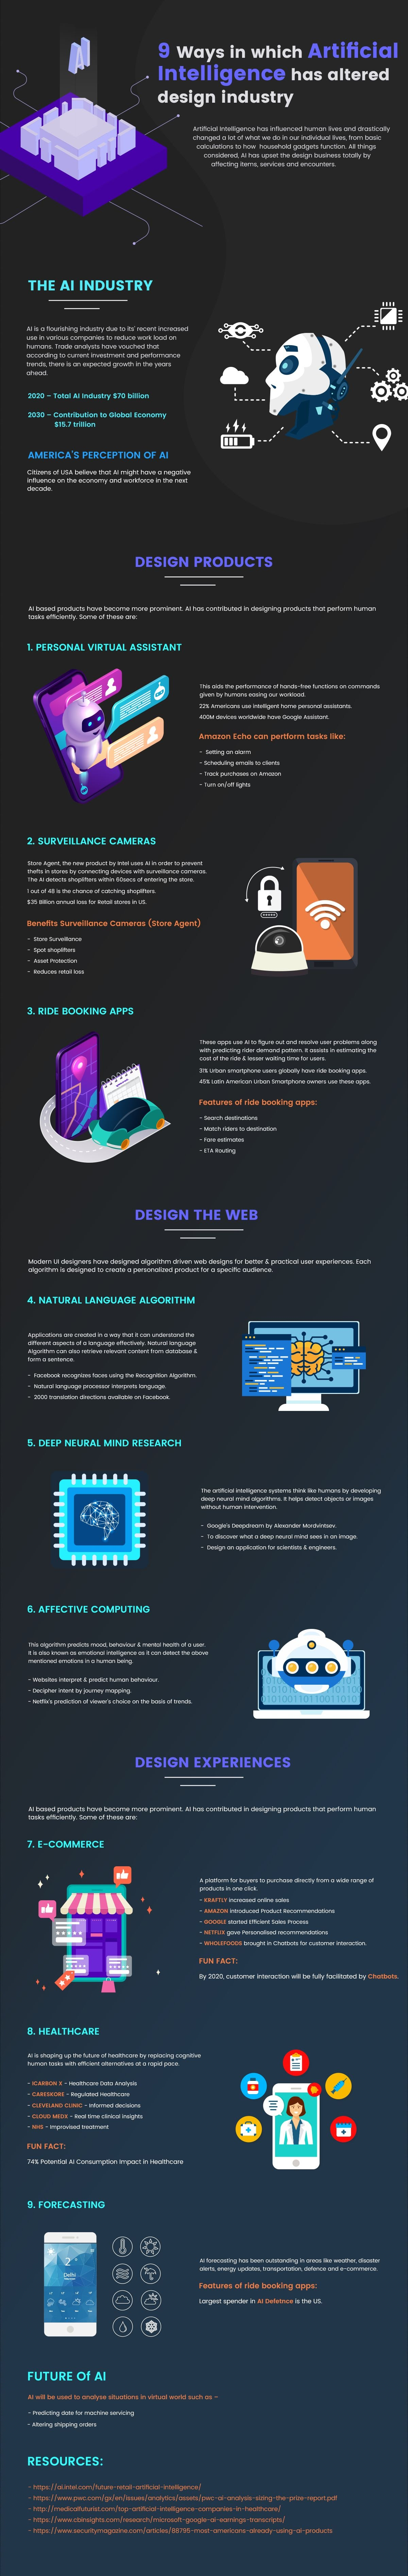 9 Ways in which Artificial Intelligence has altered design industry #infographic